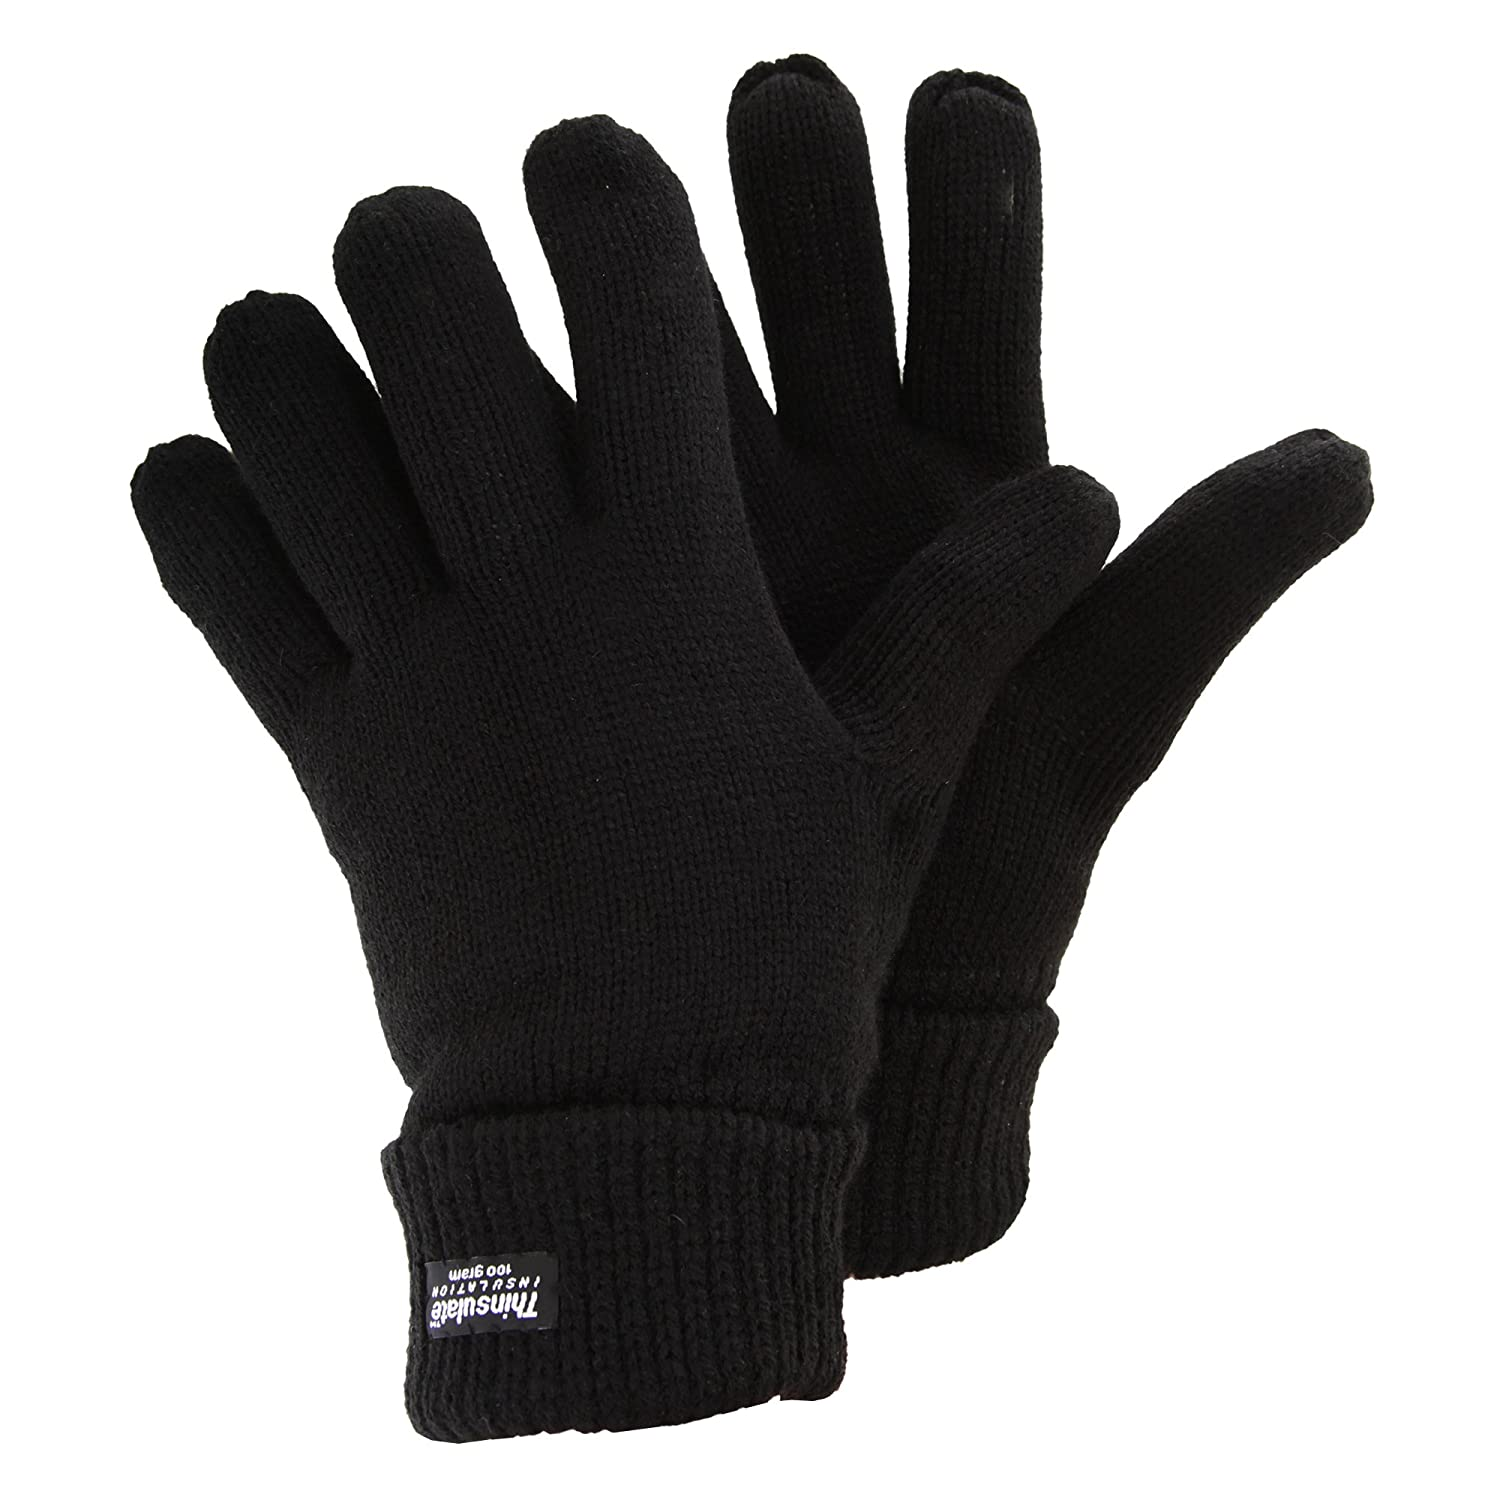 Mens Premium Windproof Knitted Thinsulate Thermal Gloves (3.3 Tog) (One Size) (Black) Universal Textiles UTGL303_1